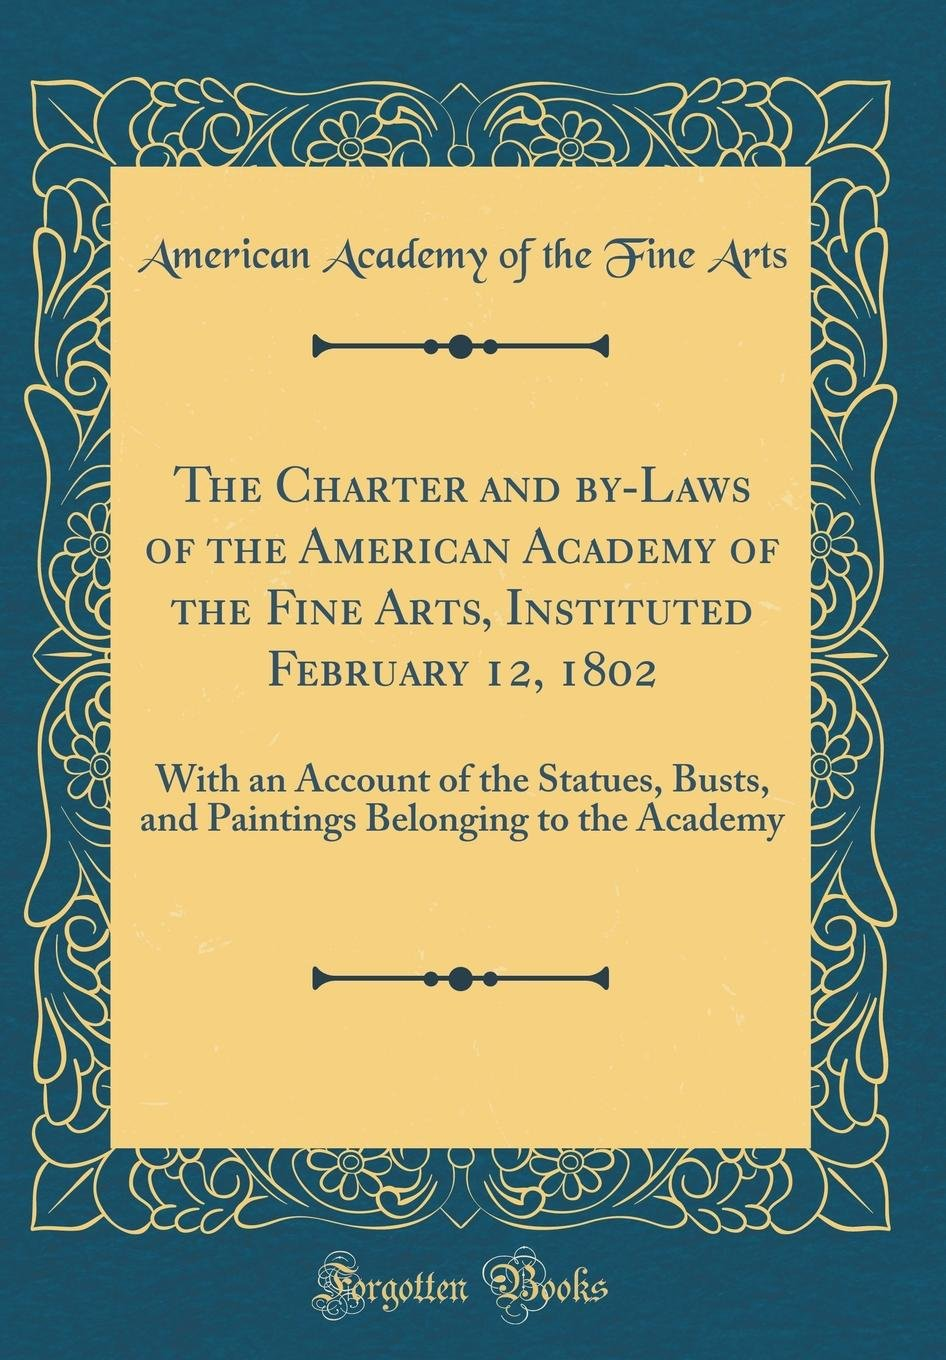 Download The Charter and By-Laws of the American Academy of the Fine Arts, Instituted February 12, 1802: With an Account of the Statues, Busts, and Paintings Belonging to the Academy (Classic Reprint) ebook